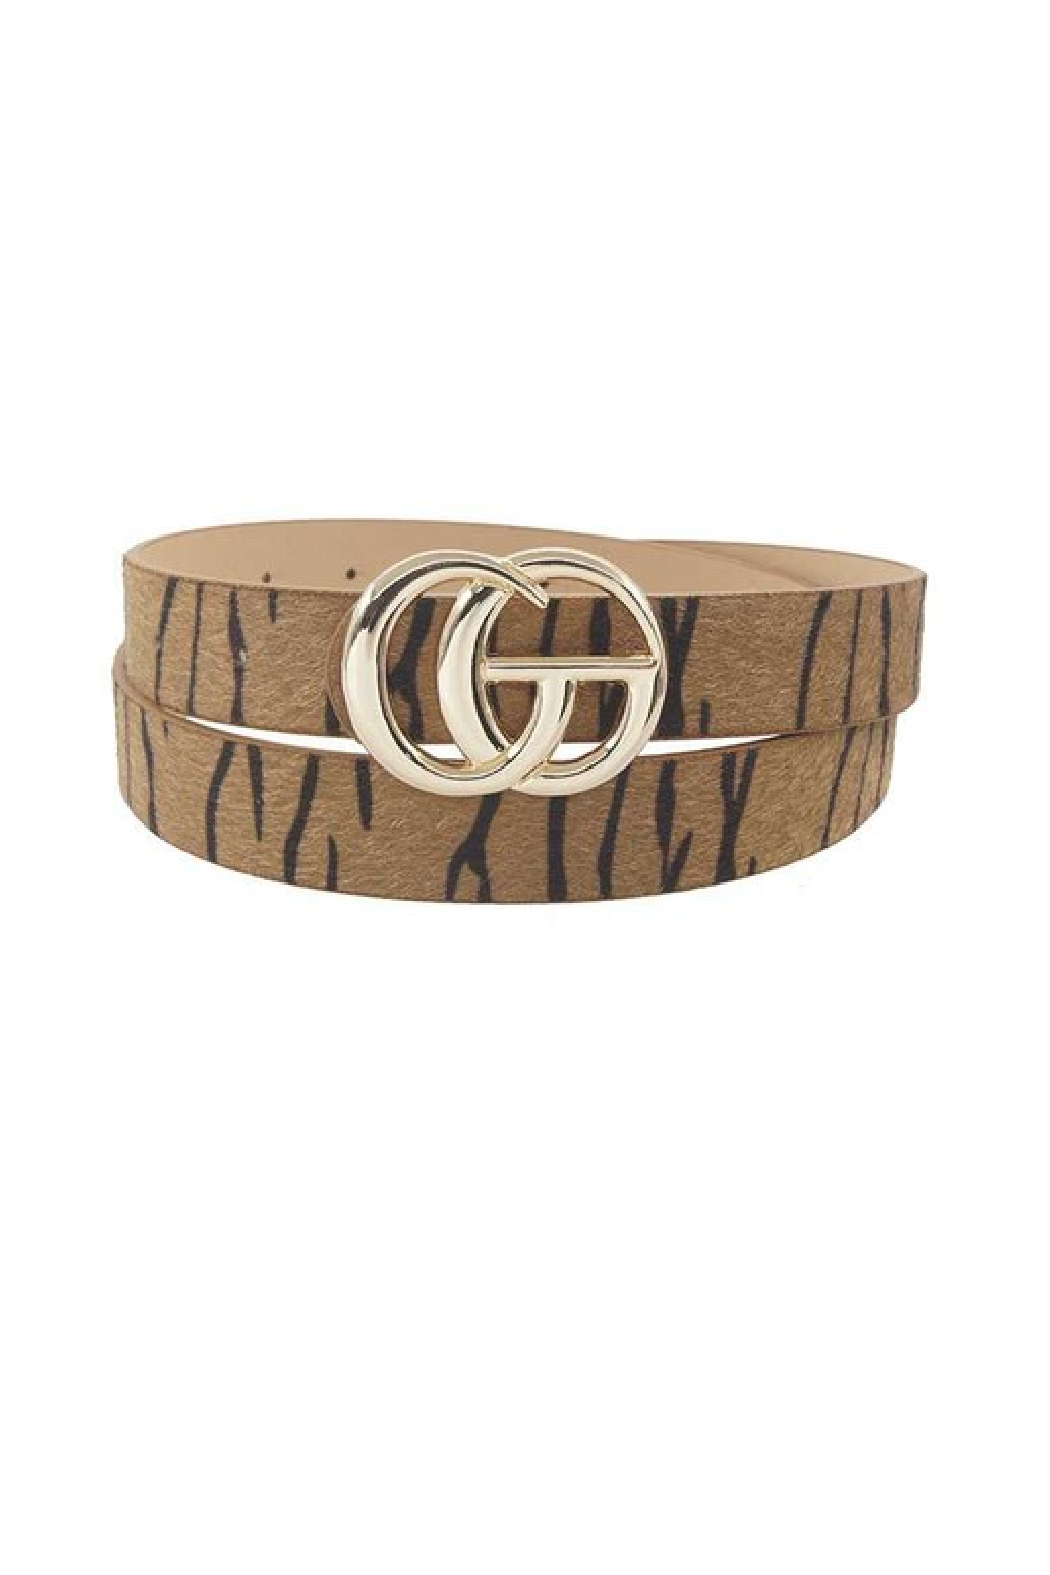 Susan Ankerson GG Buckle Belt - Front Cropped Image